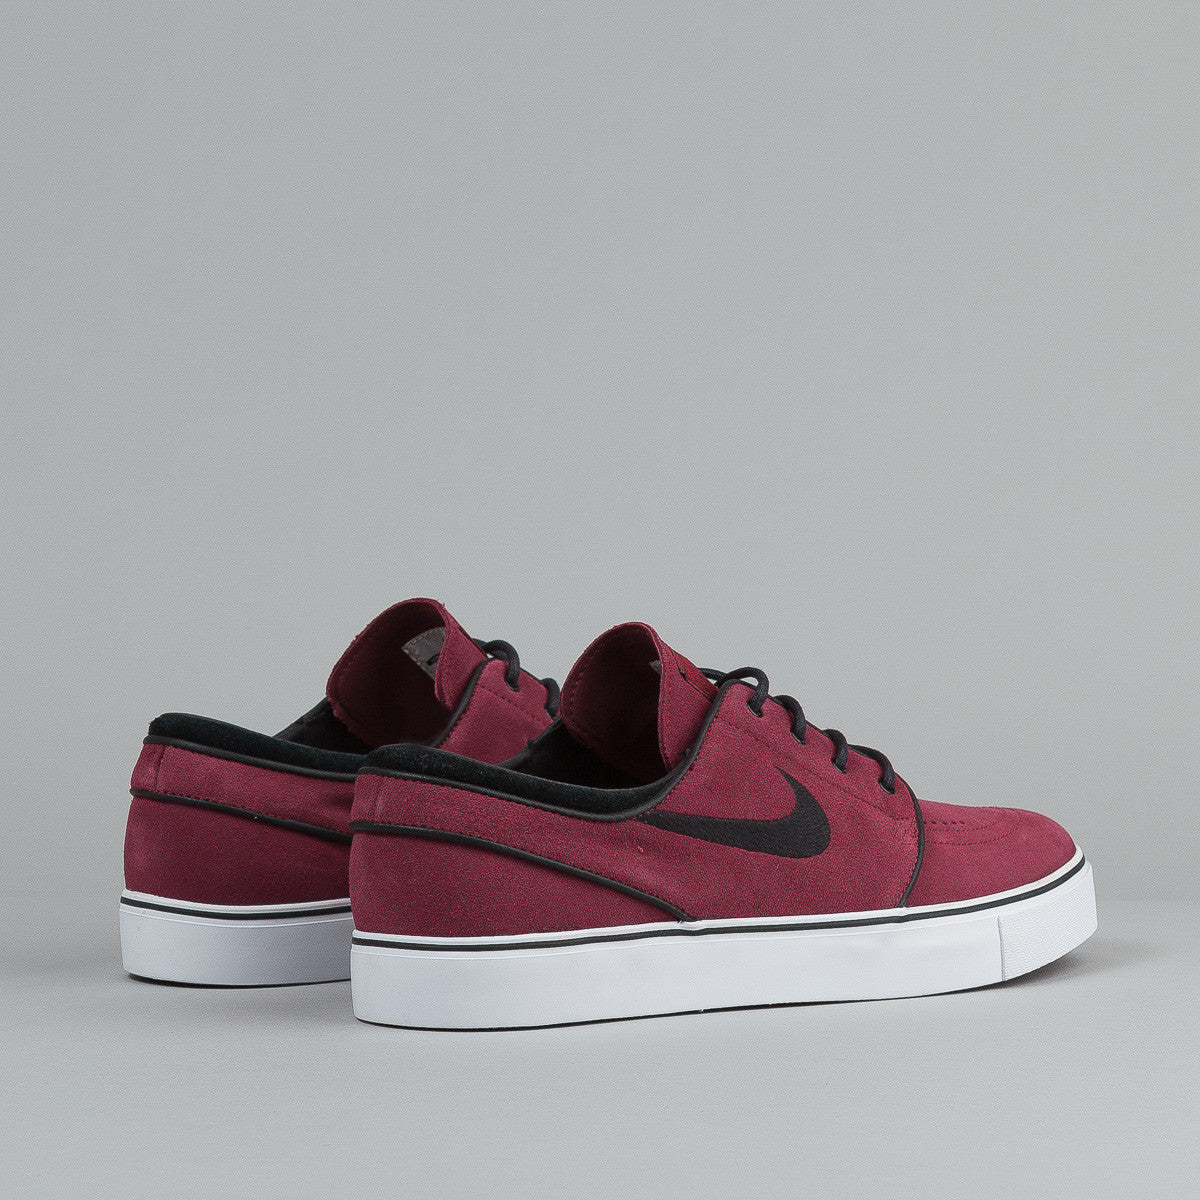 Nike SB Stefan Janoski Shoes - Team Red / Black / White